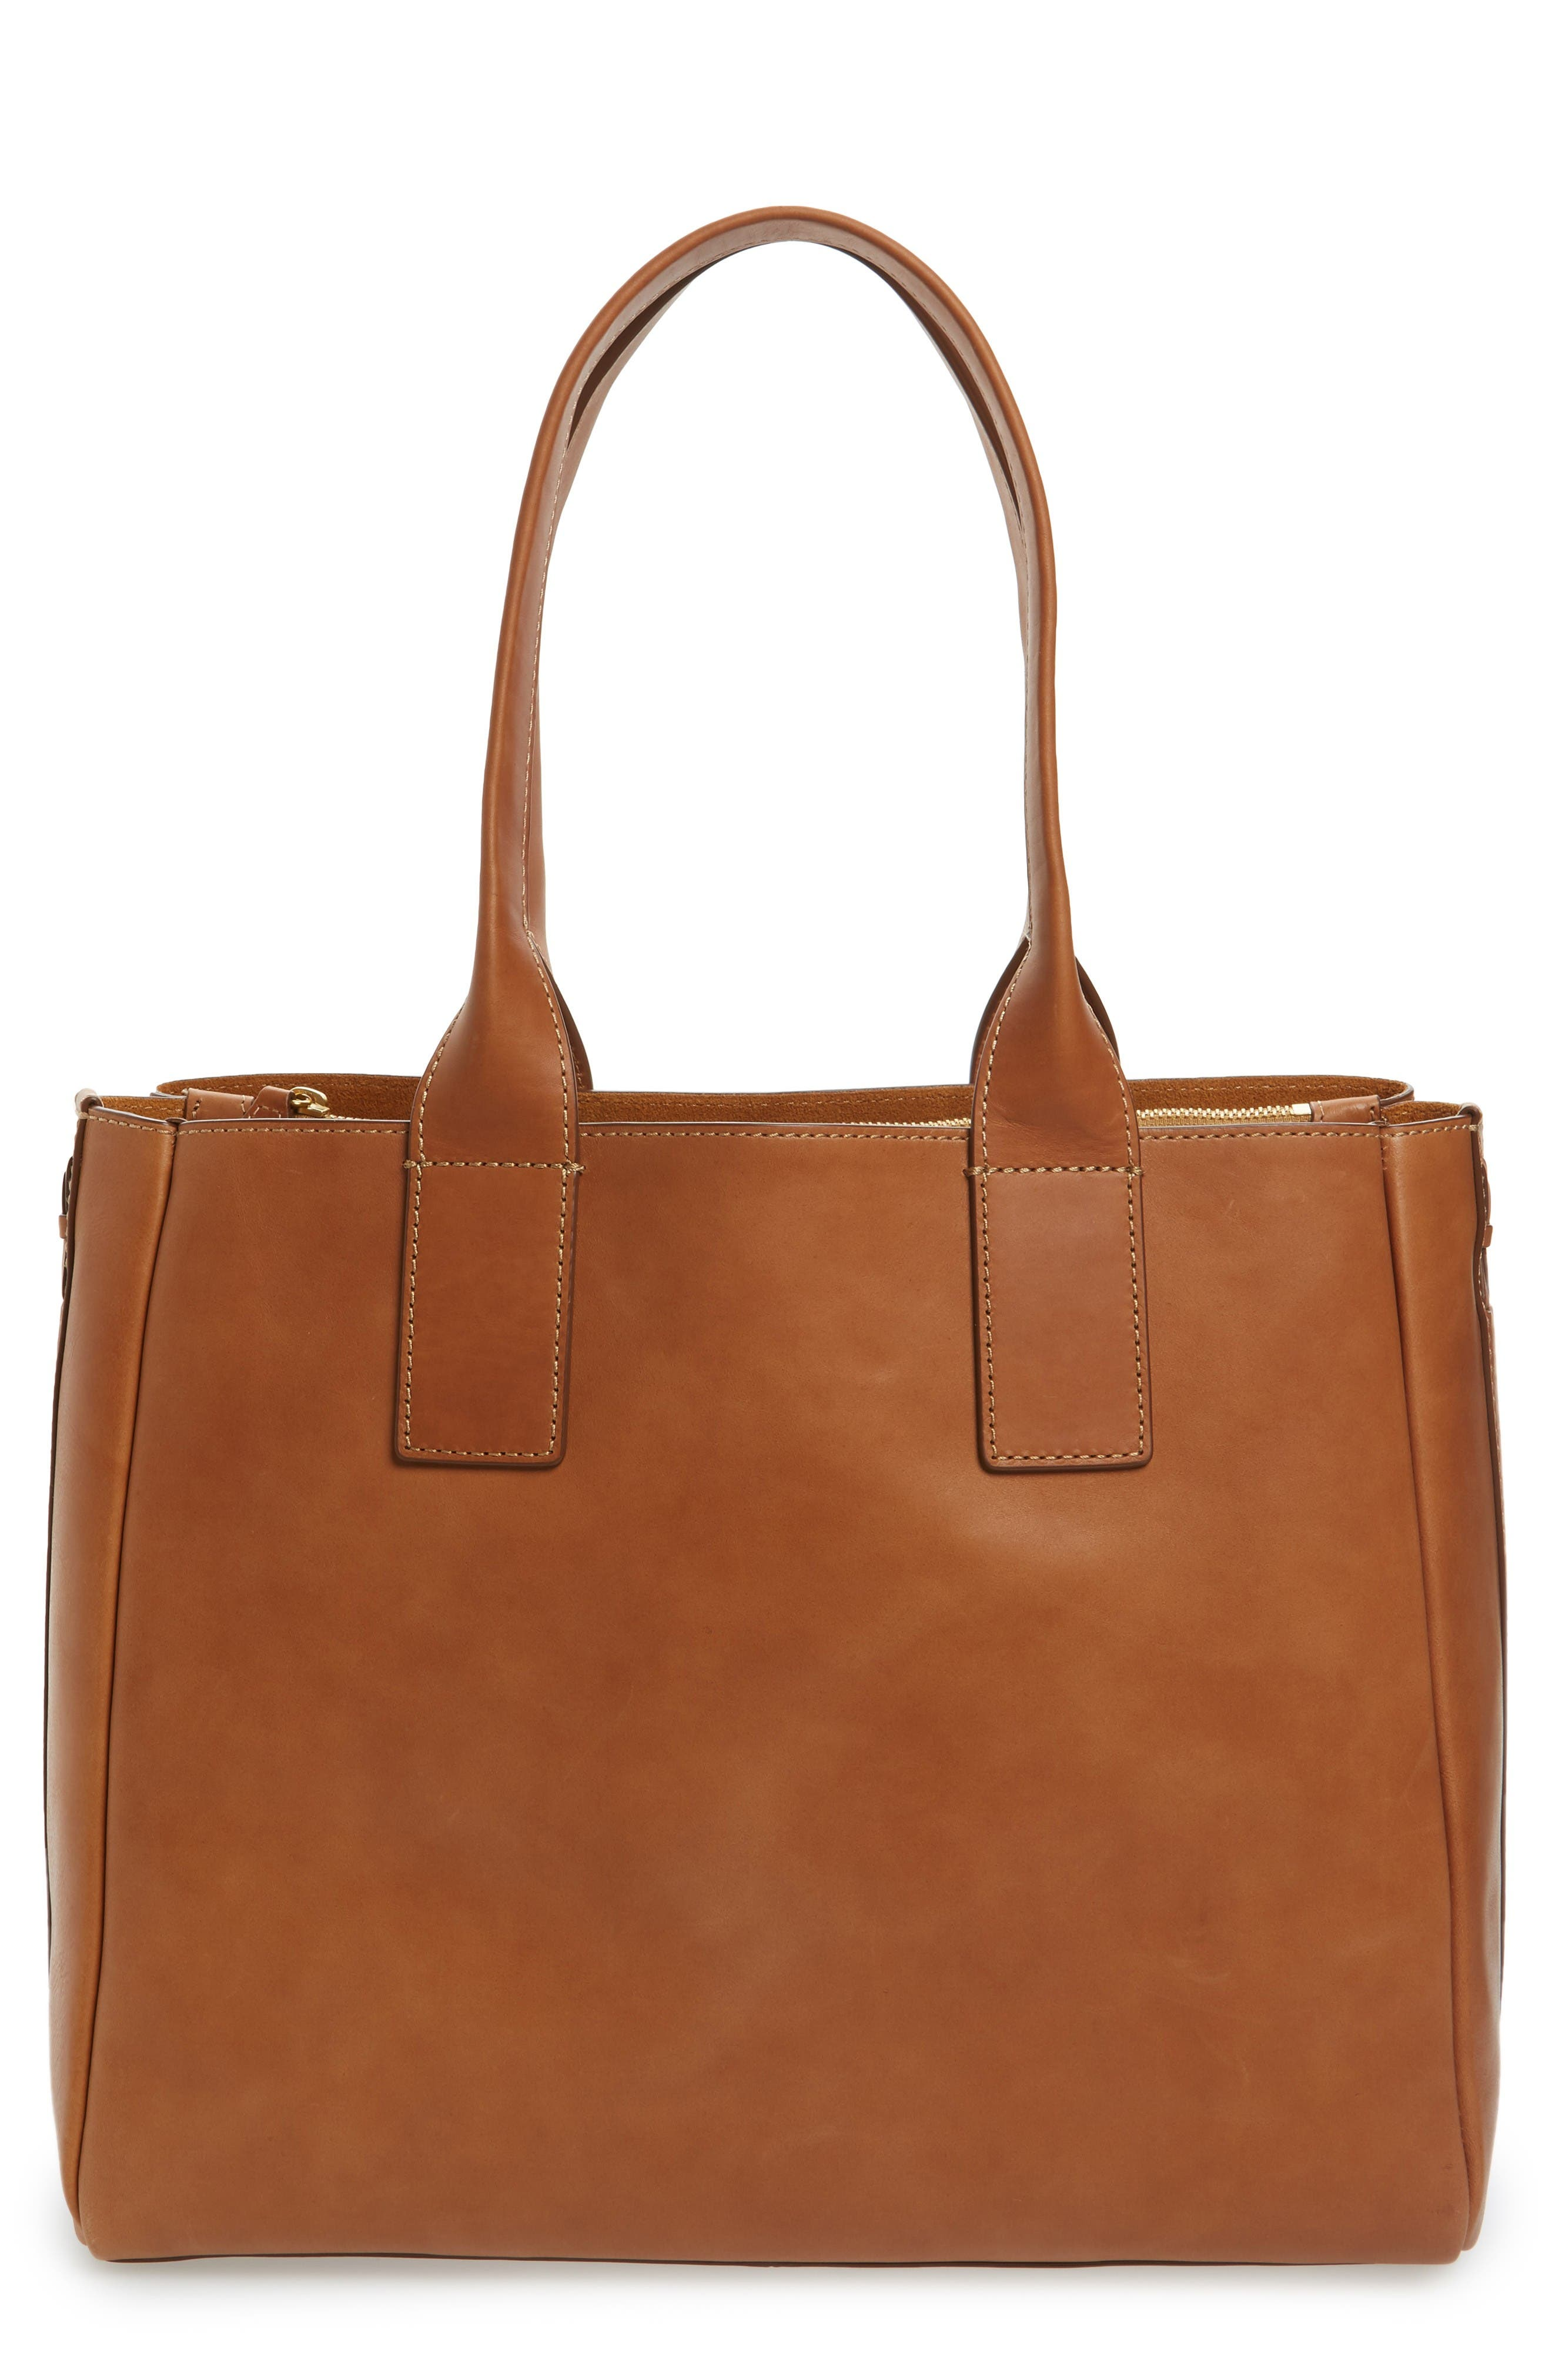 Main Image - Frye Ilana Leather Tote